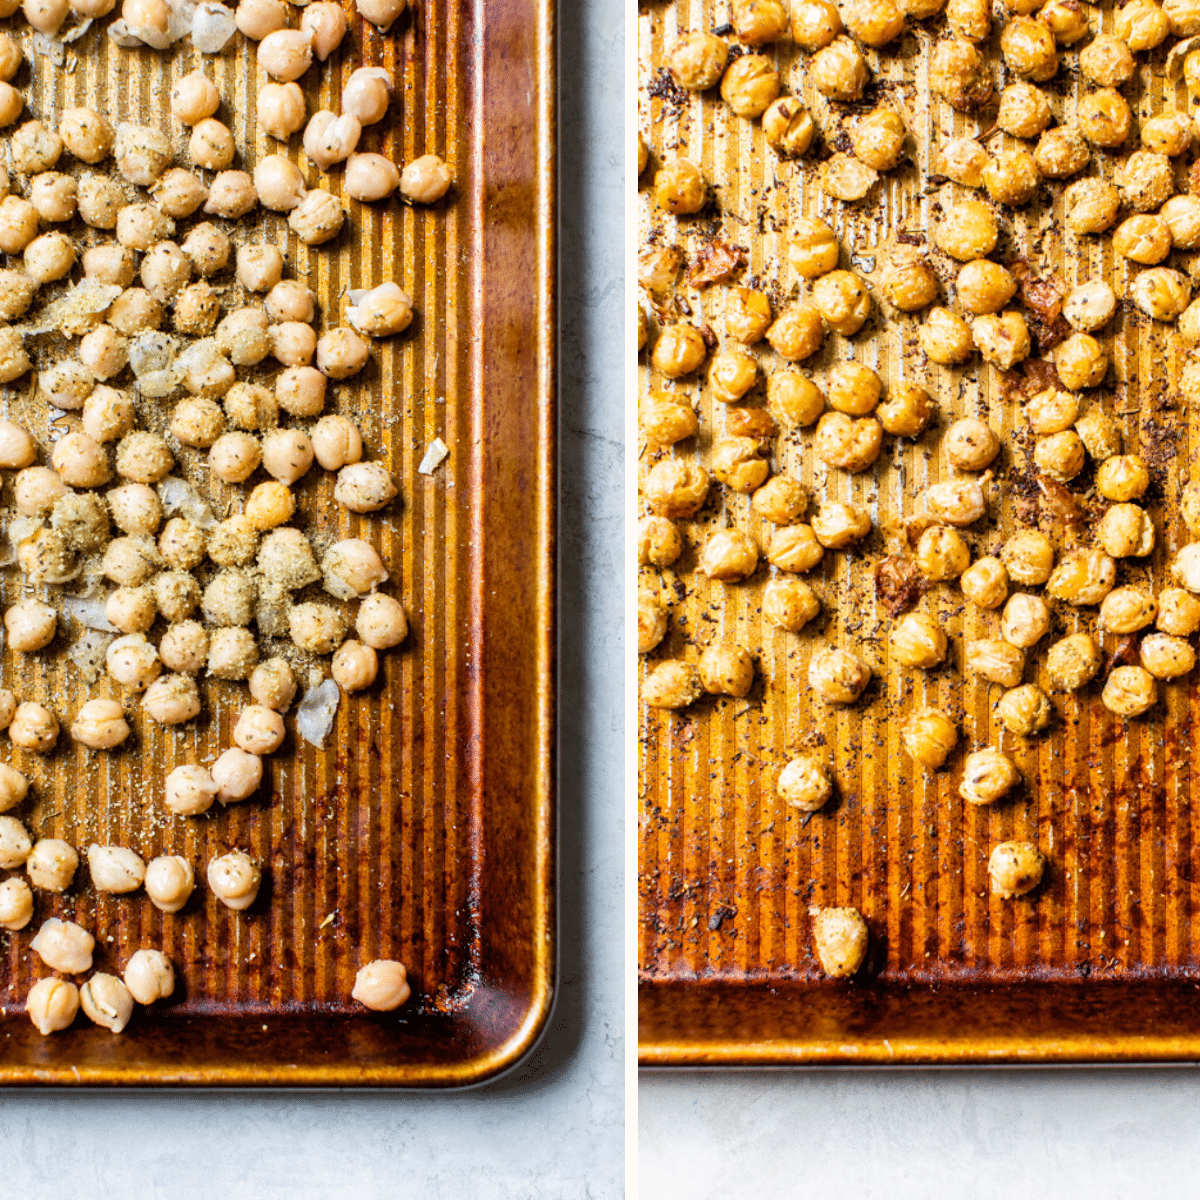 chickpeas on a baking sheet